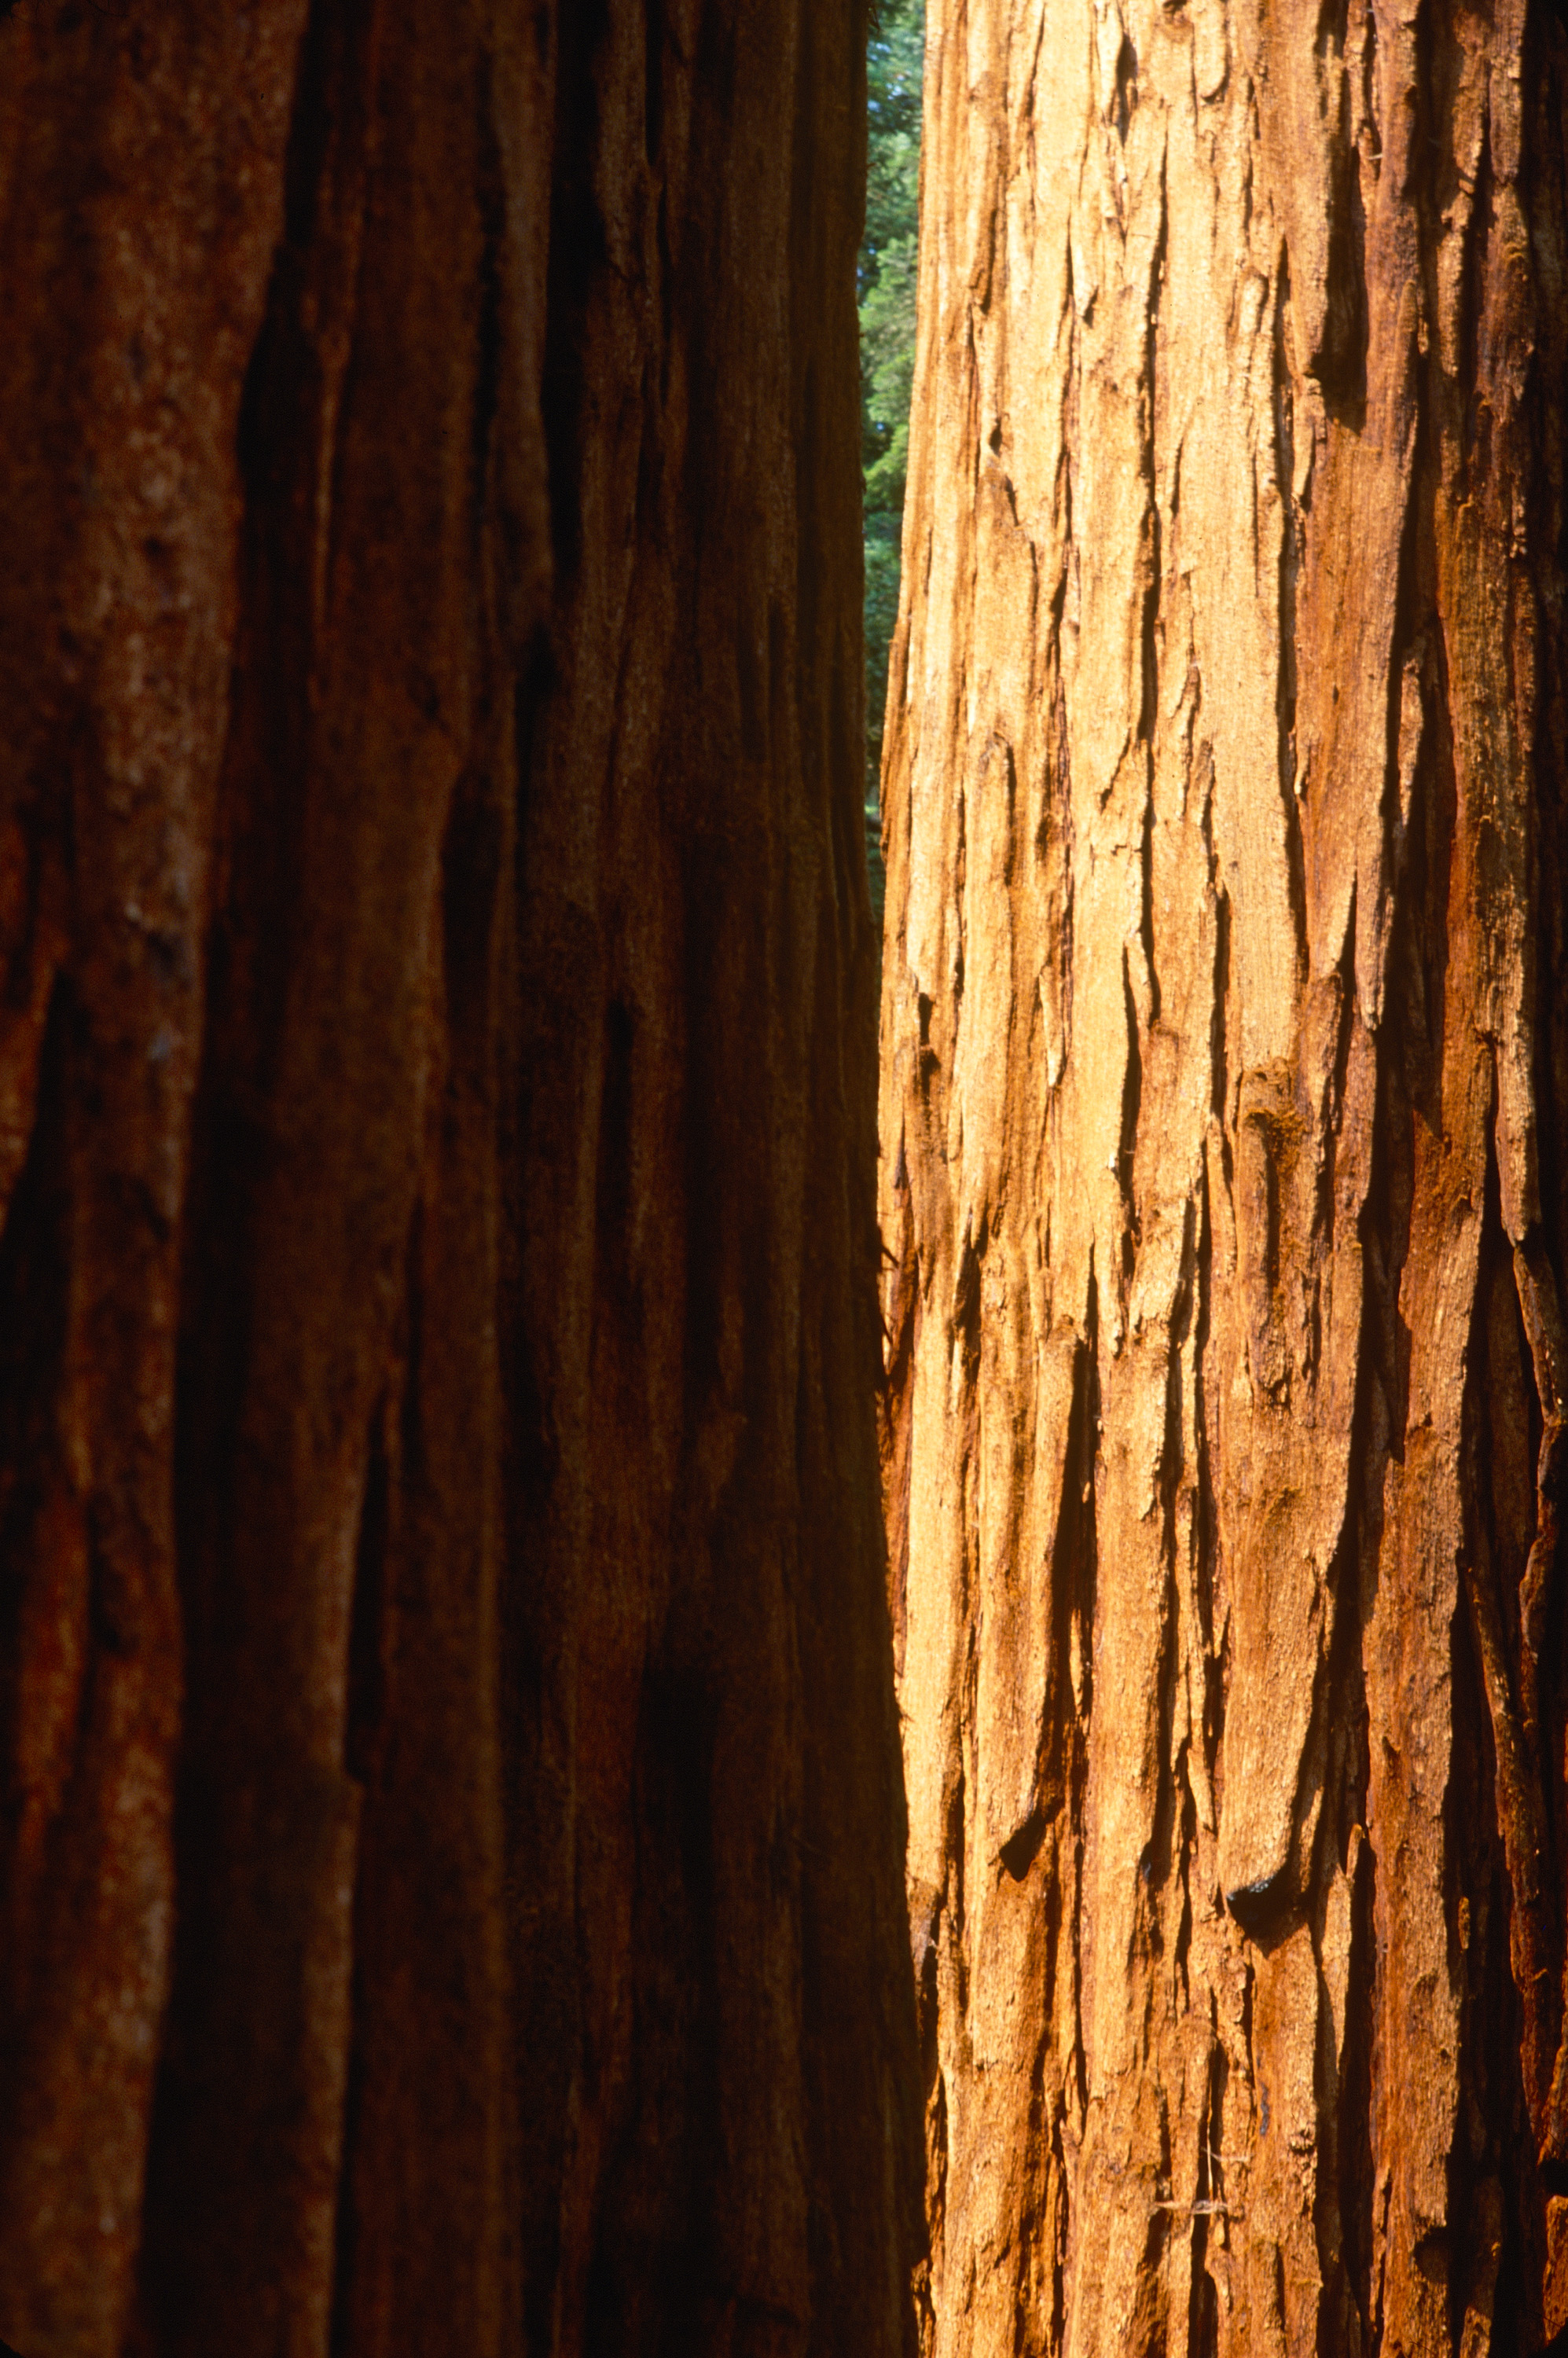 Trunk Study #9 - Sequoia NP, CA - July 2002